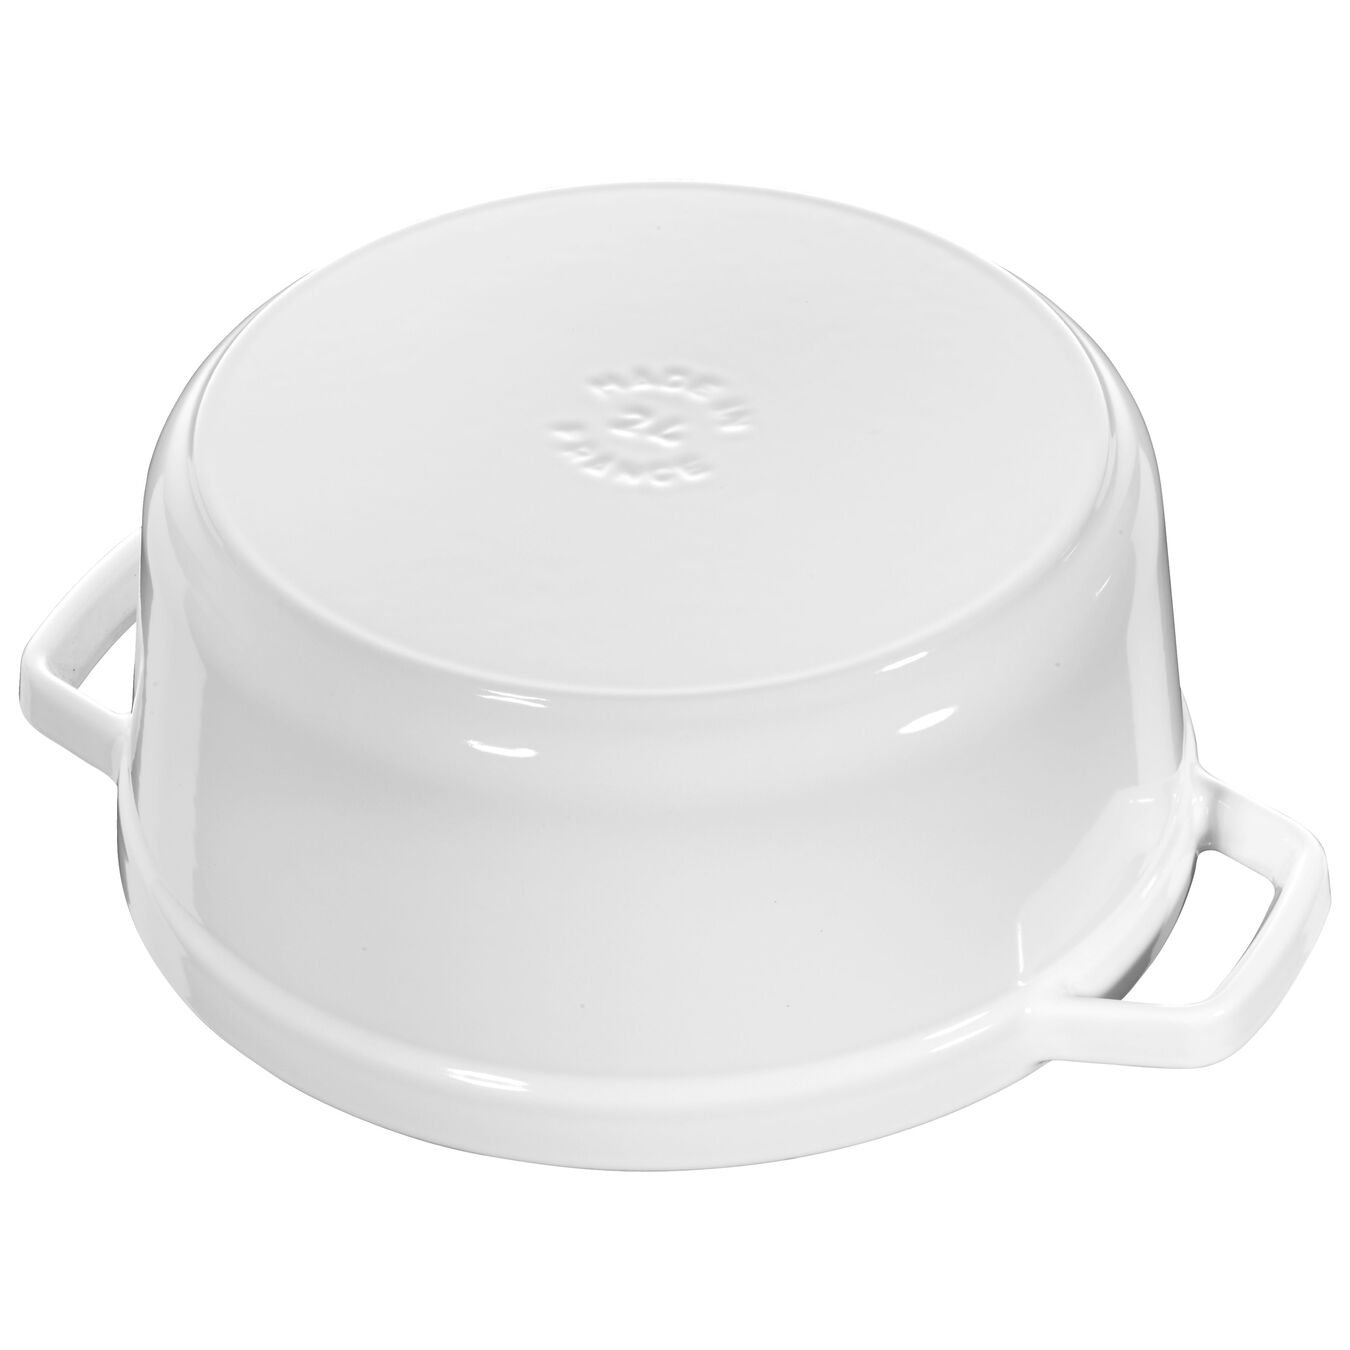 4-qt round cocotte - white - visual imperfections,,large 5